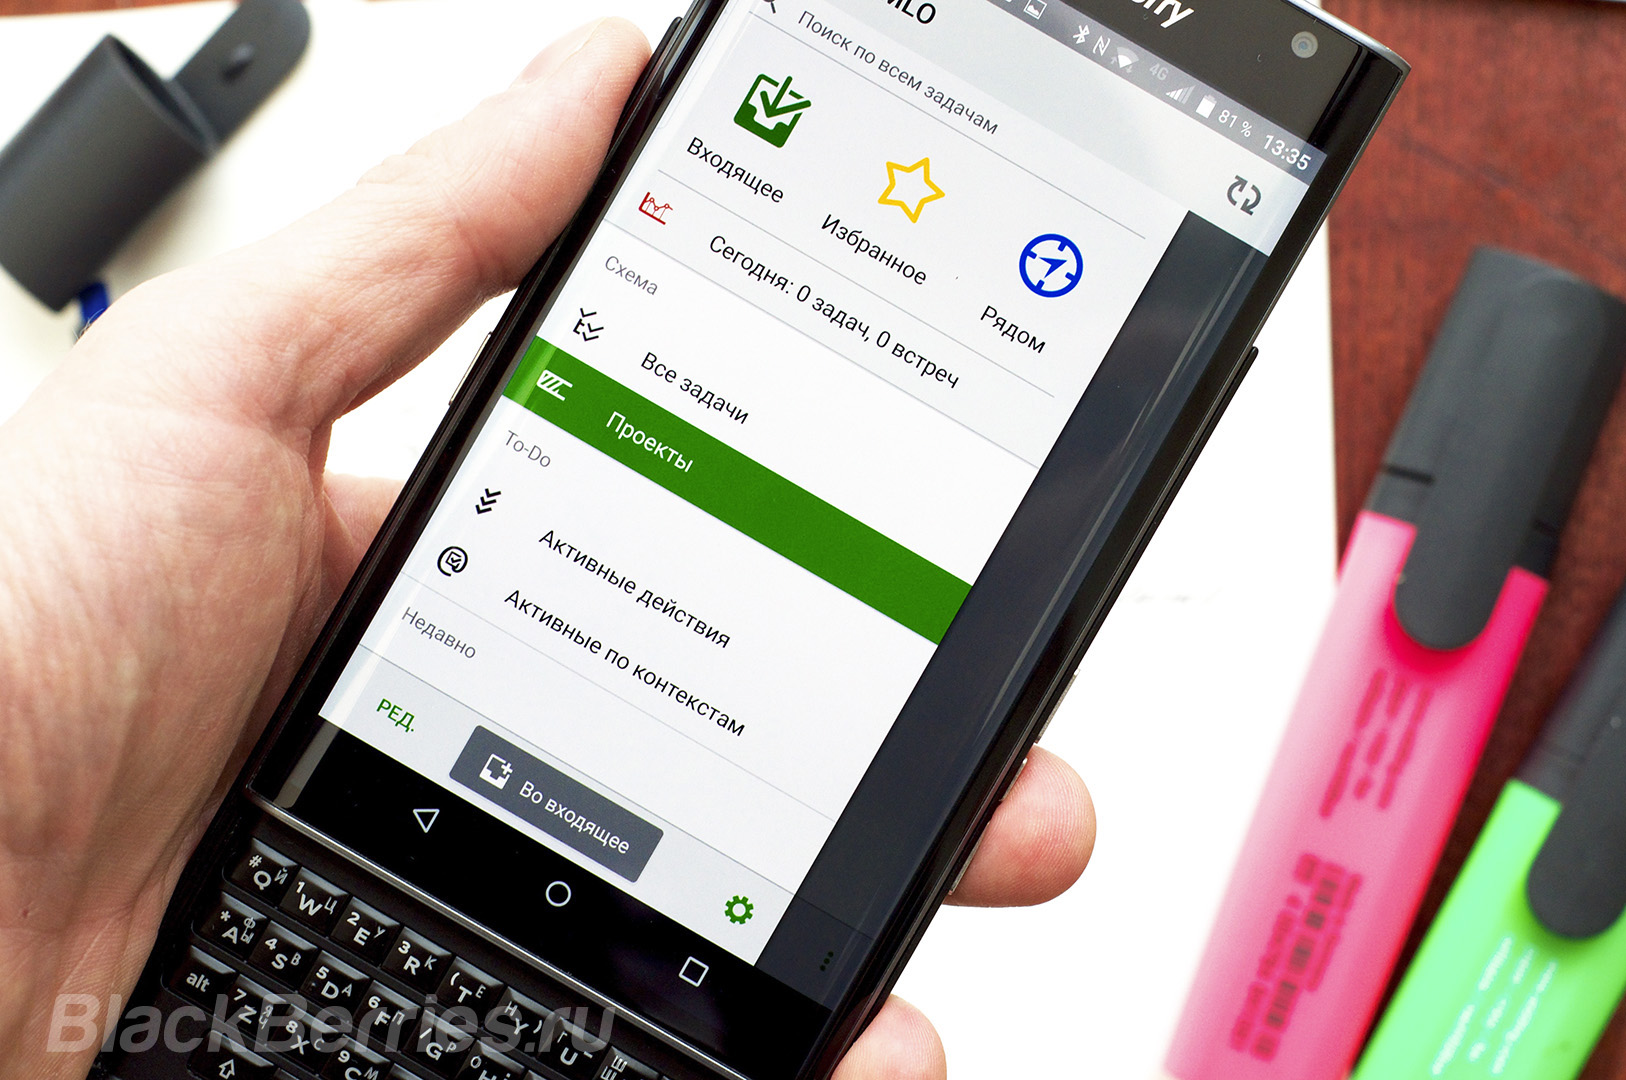 BlackBerry-Apps-20-02-15